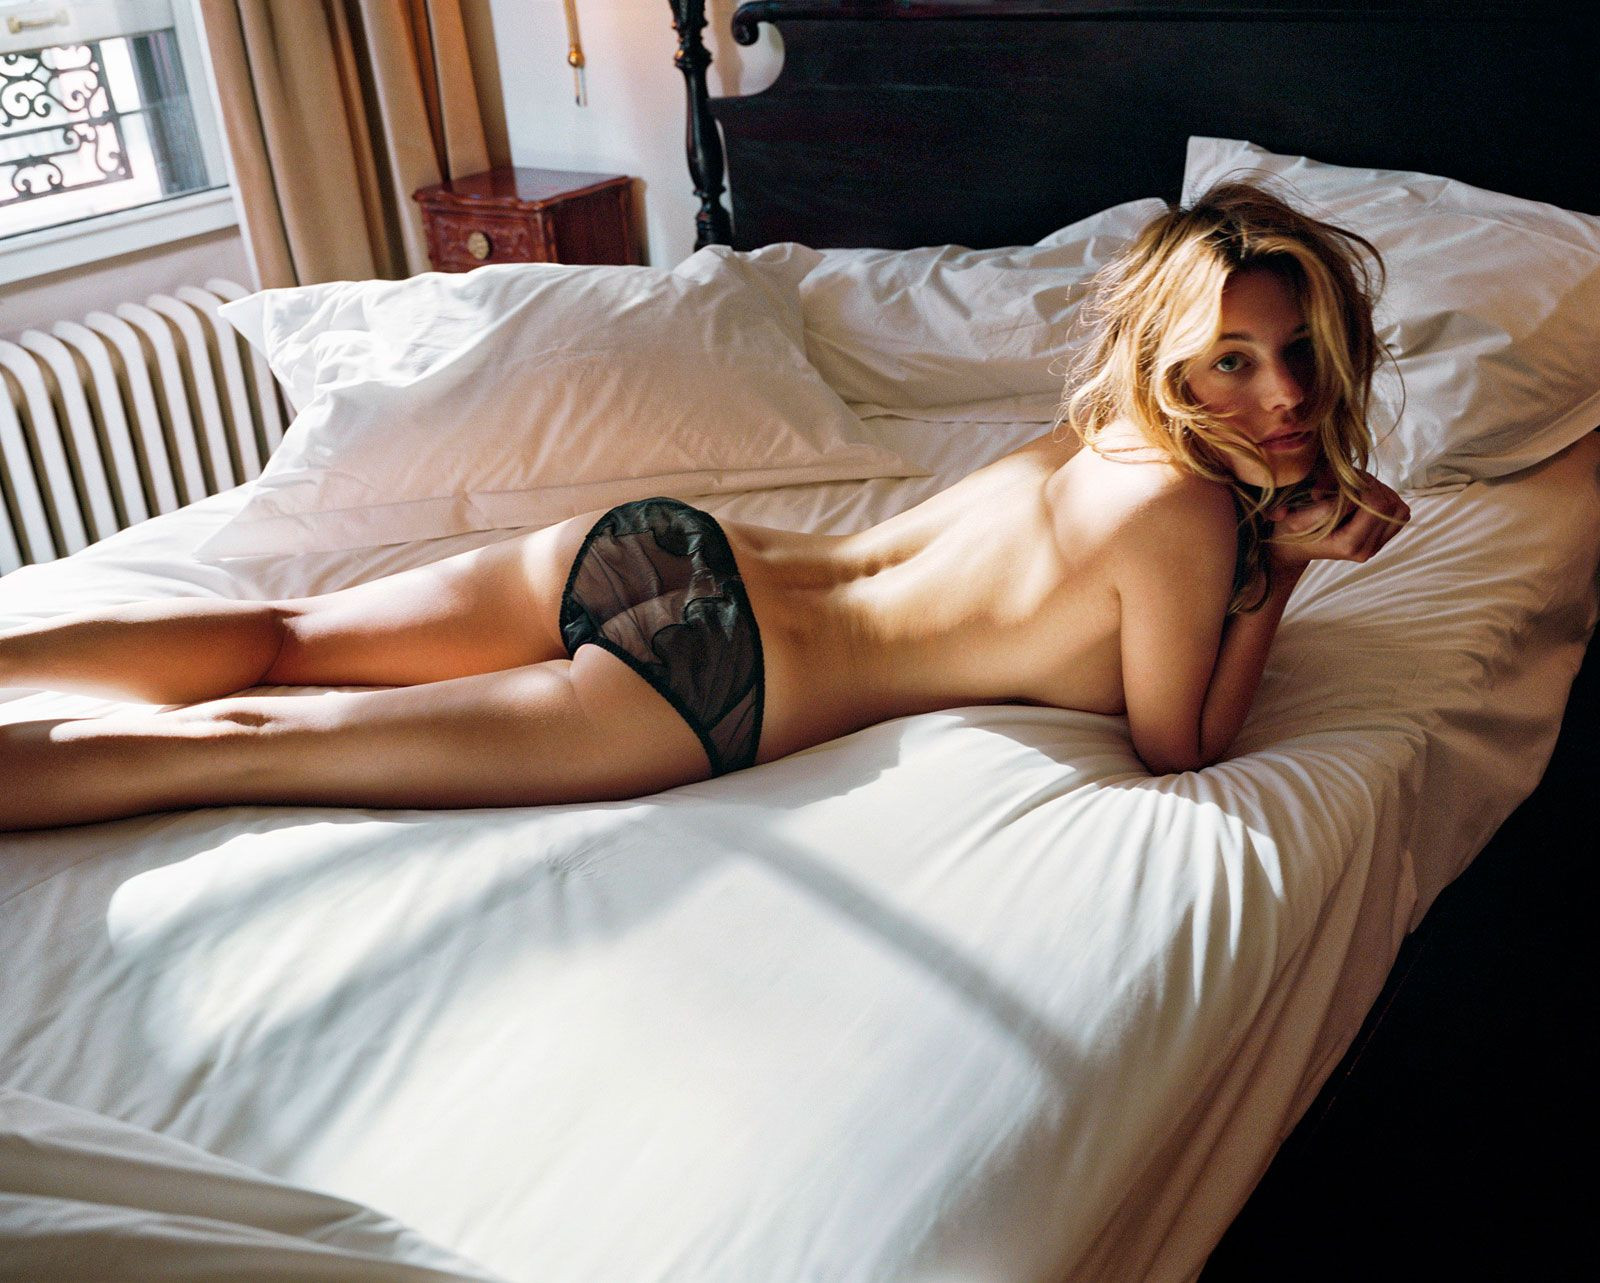 Camille Rowe Nude 3 TheFappening.nu